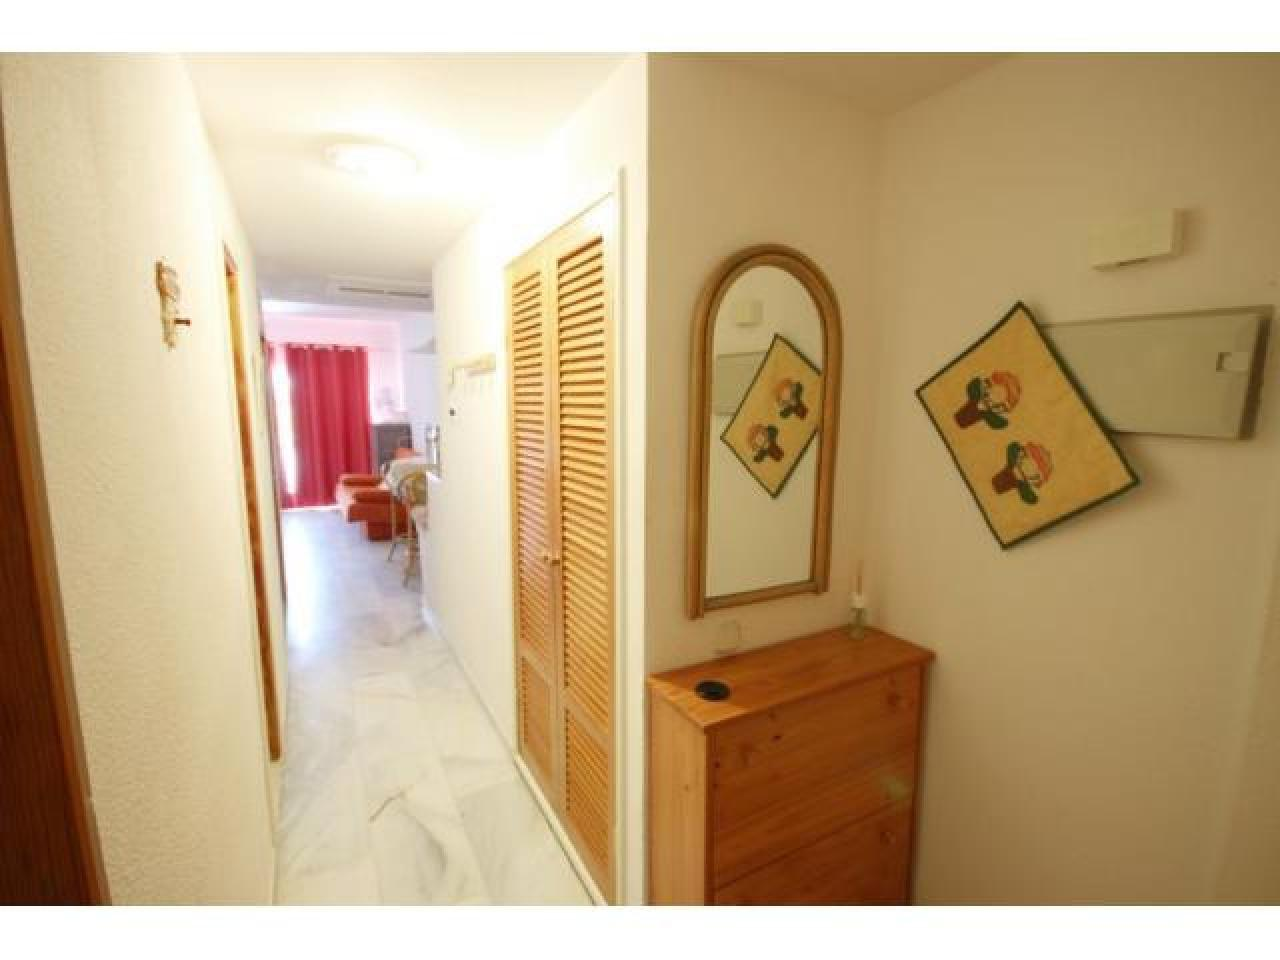 Apartment in Tenerife for rent and sale » #879 - 2